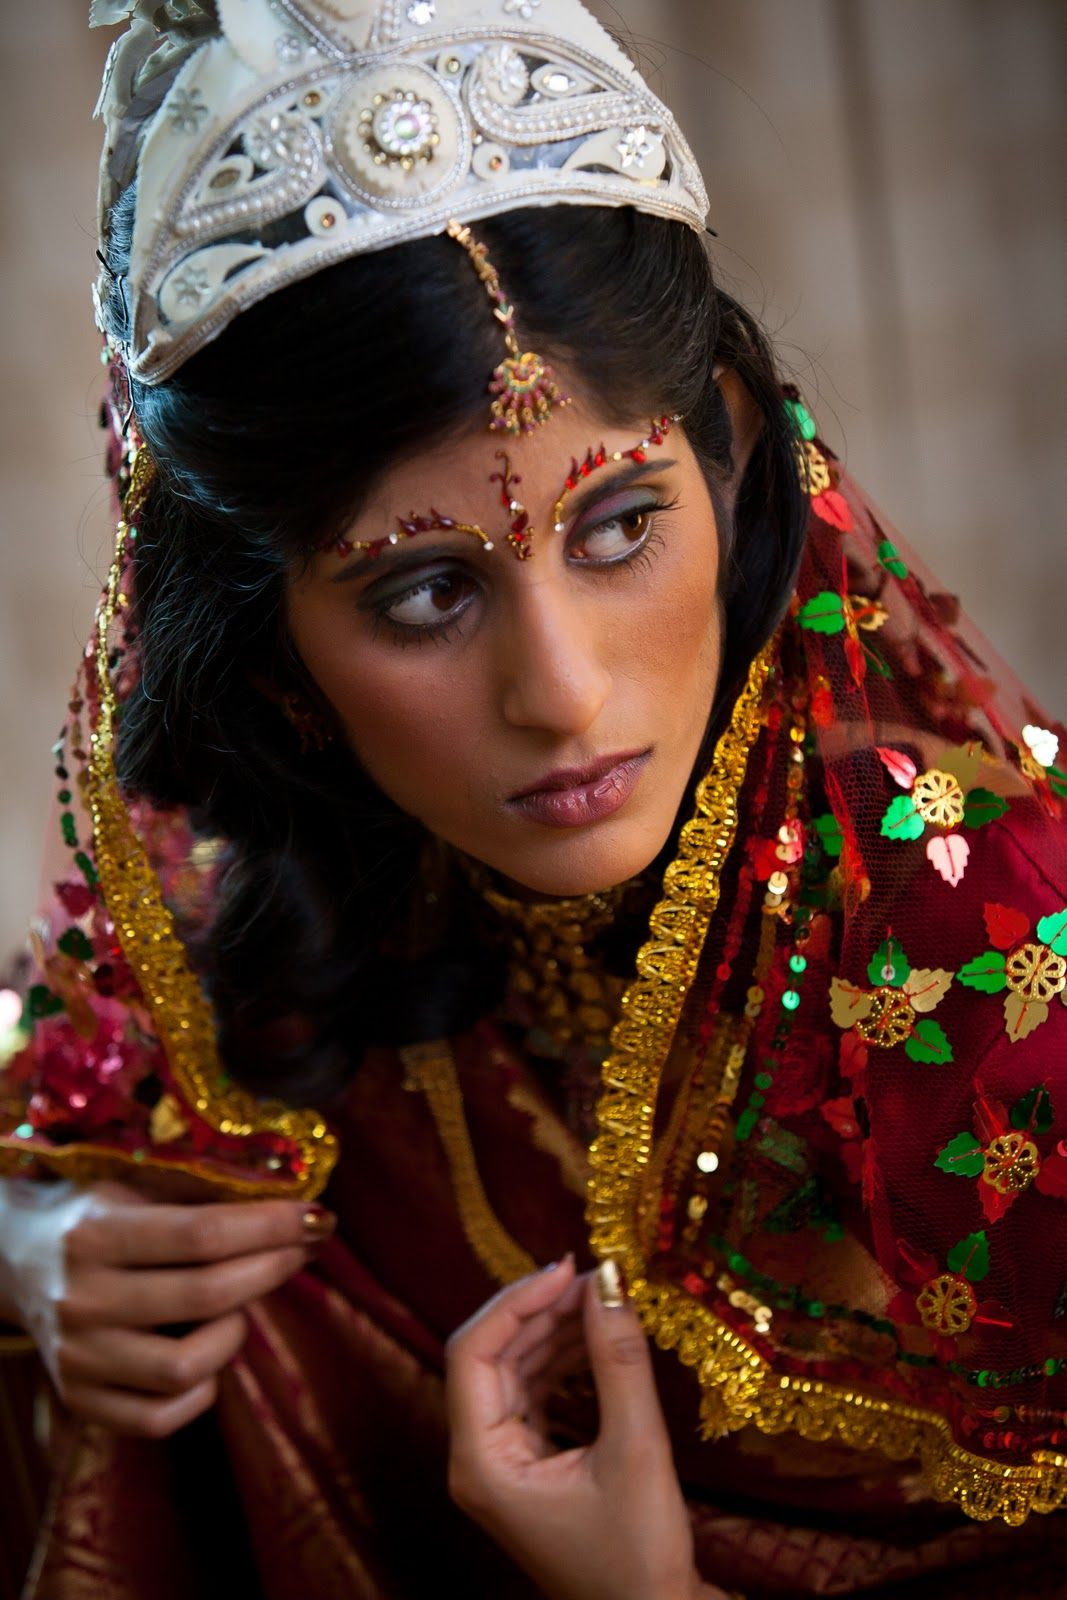 trio makeup and hair design (from indian wedding vendor